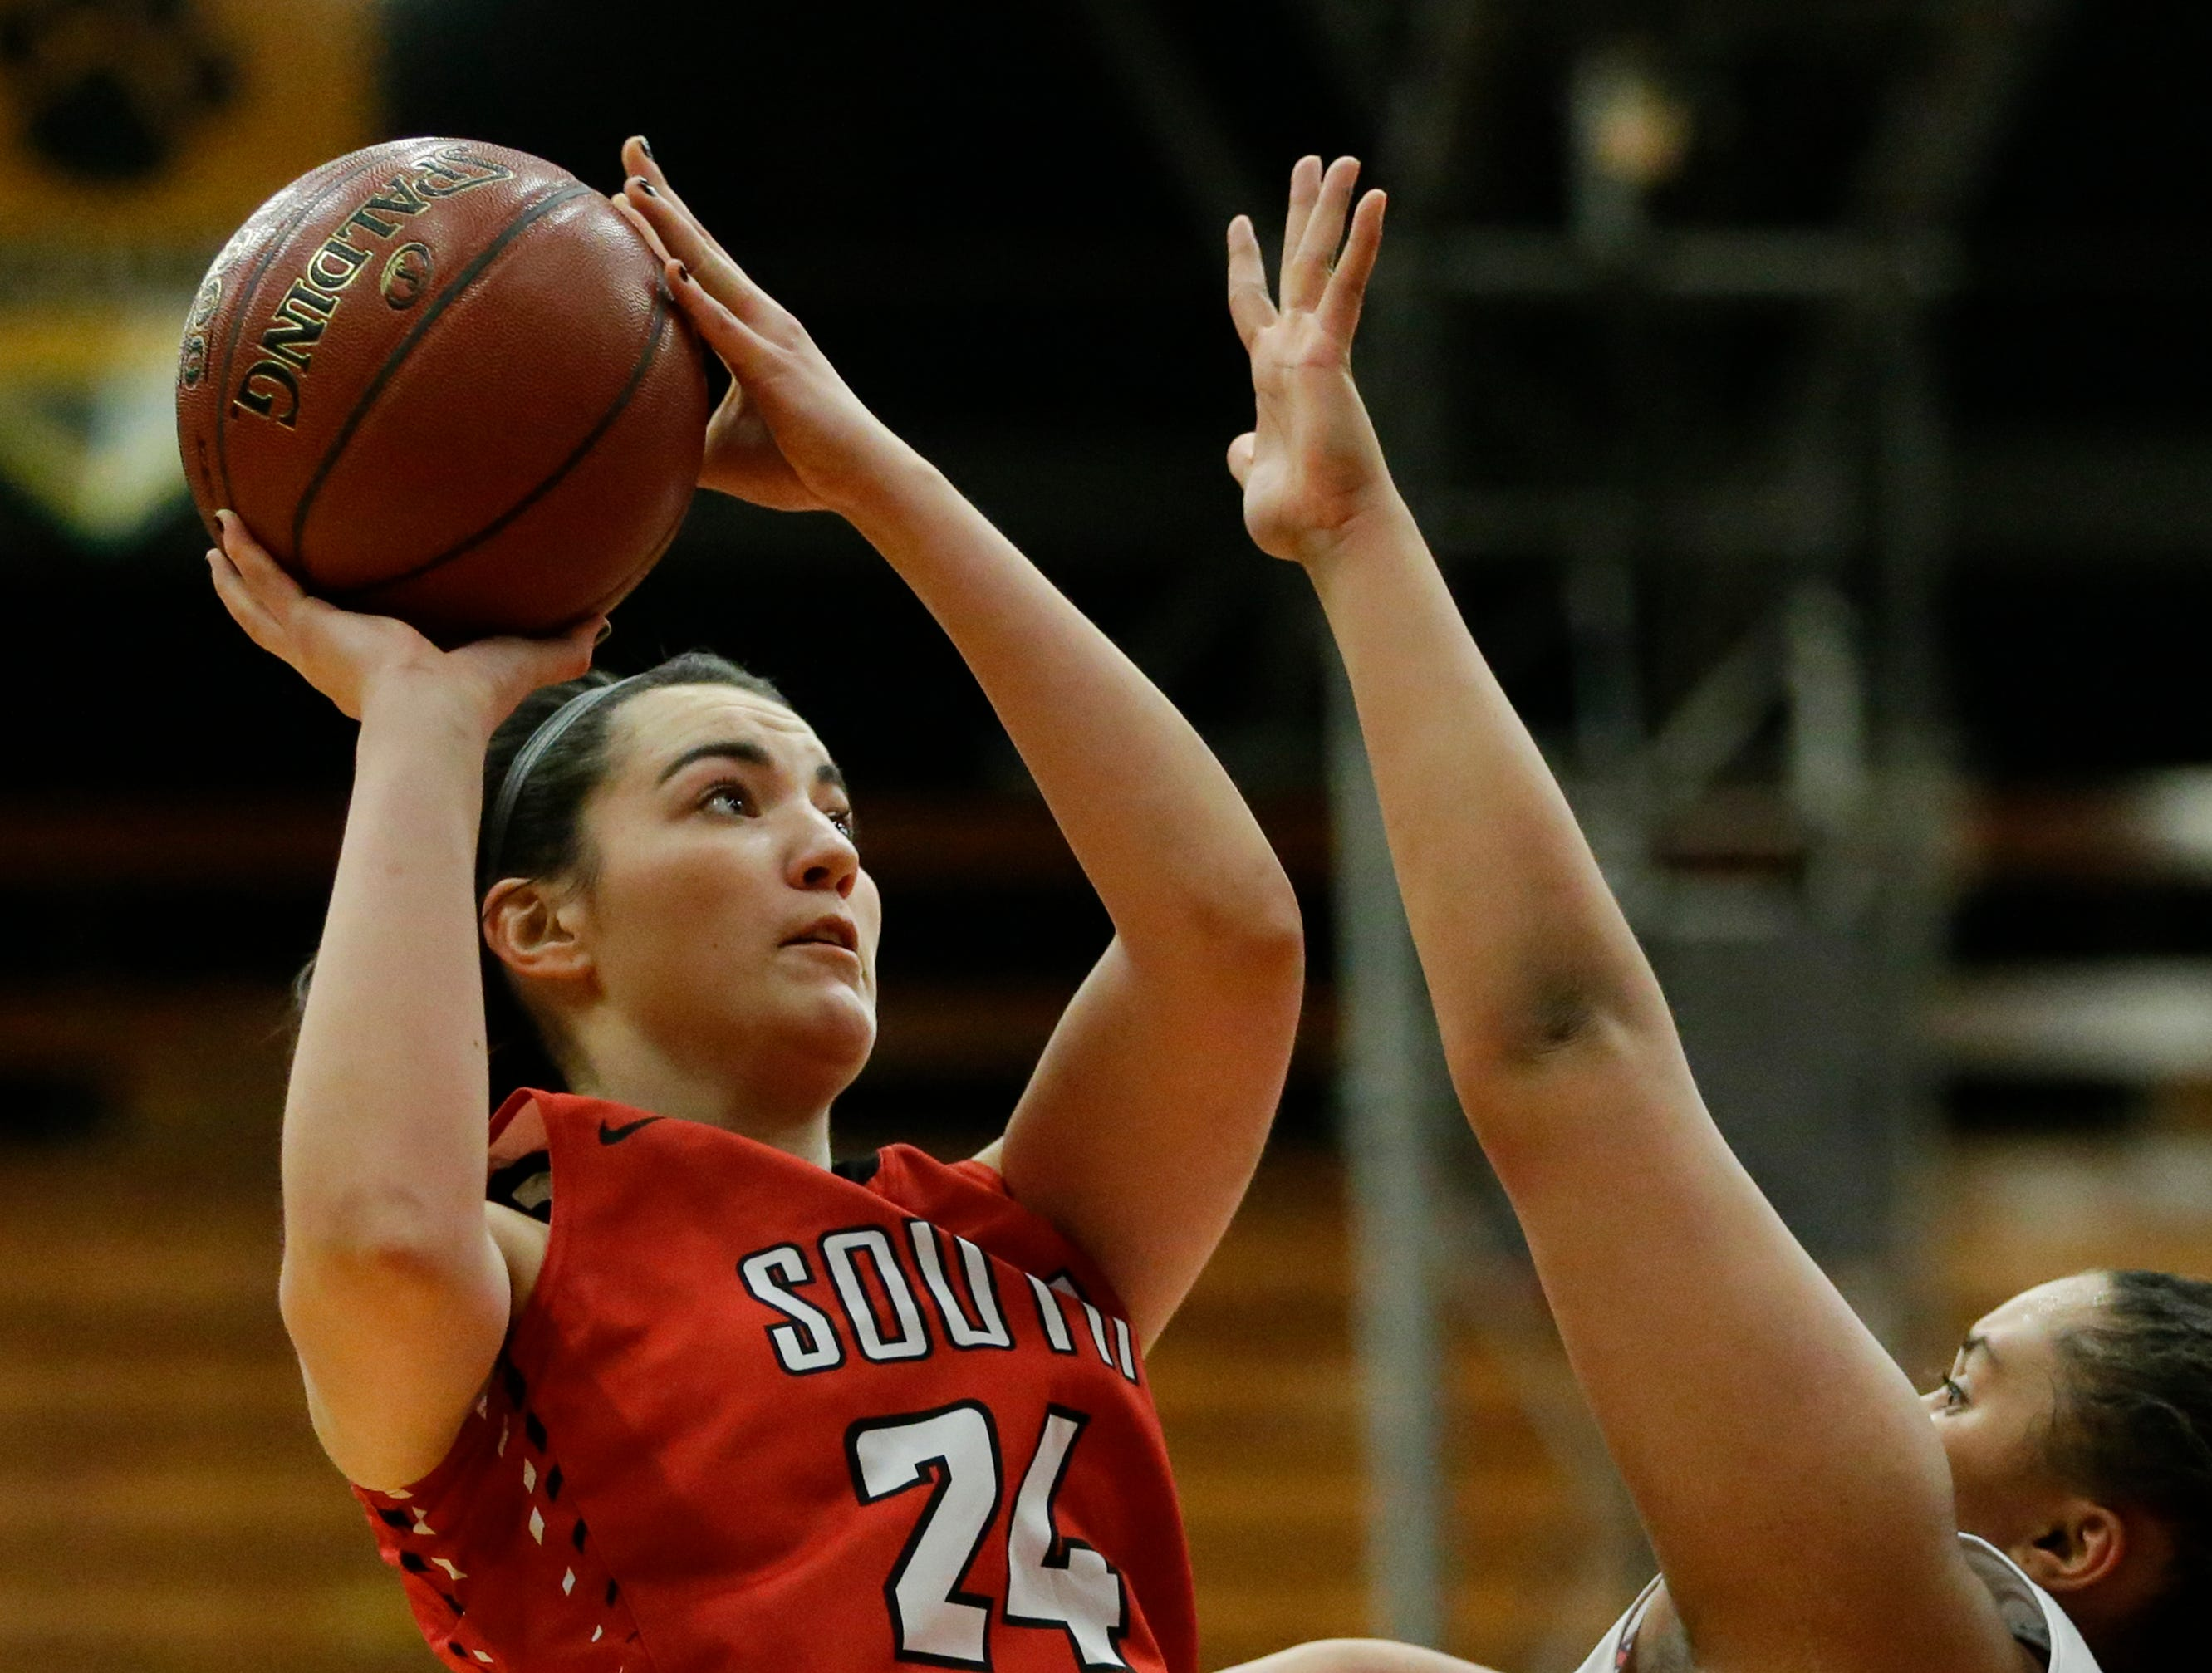 Sheboygan South's Amy Pfile shoots over Manitowoc Lincoln's Massendra Musial (40) during an FRCC matchup at Manitowoc Lincoln High School Friday, January 4, 2019, in Manitowoc, Wis. Joshua Clark/USA TODAY NETWORK-Wisconsin